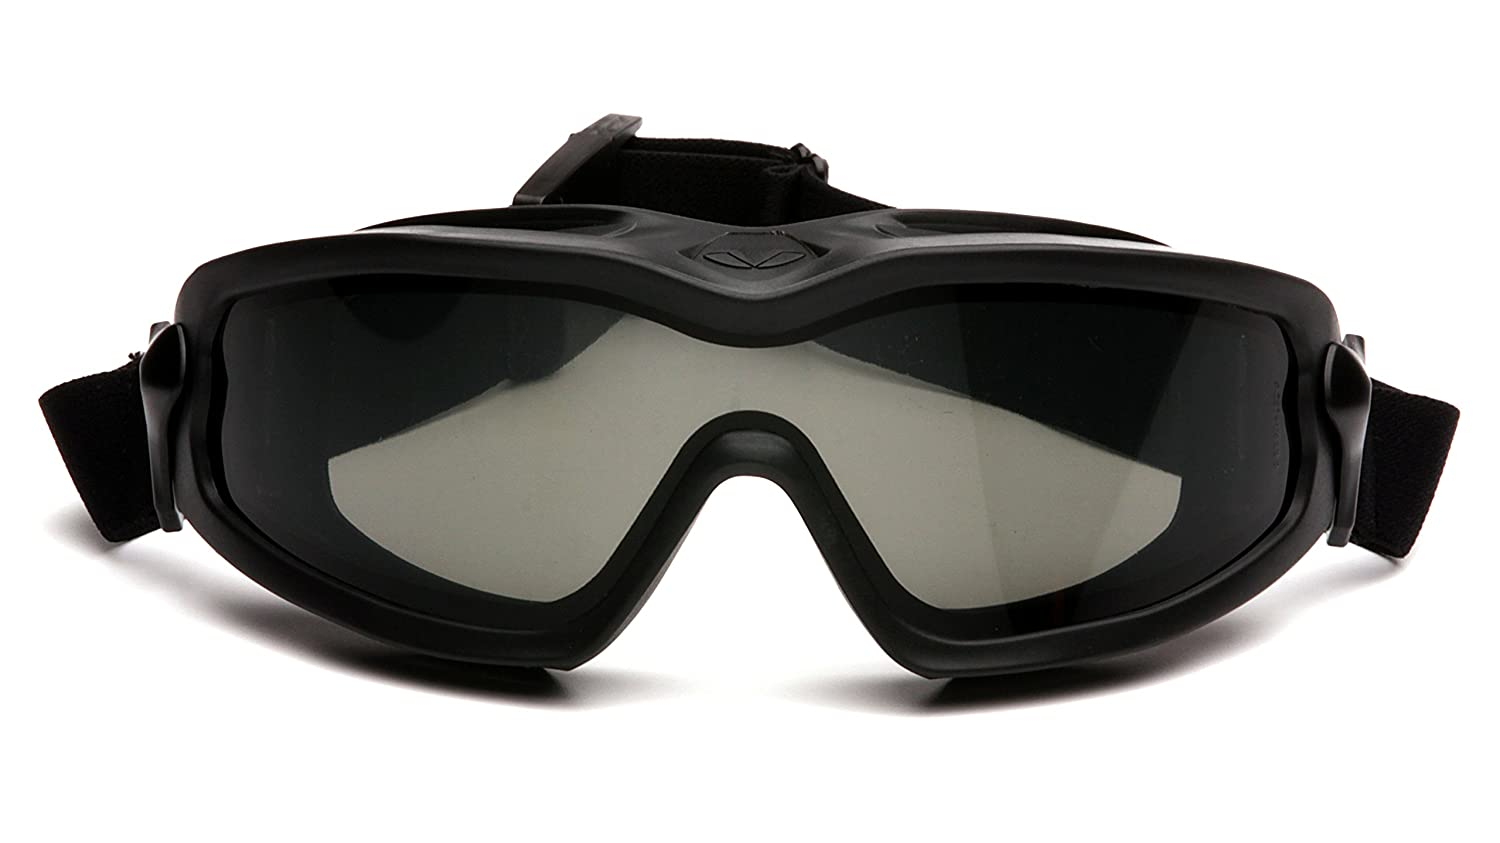 Pyramex V2G PLUS Safety Goggles with Adjustable Strap Gray Anti-Fog Dual Lens with Black Strap Green Supply GB6420SDT